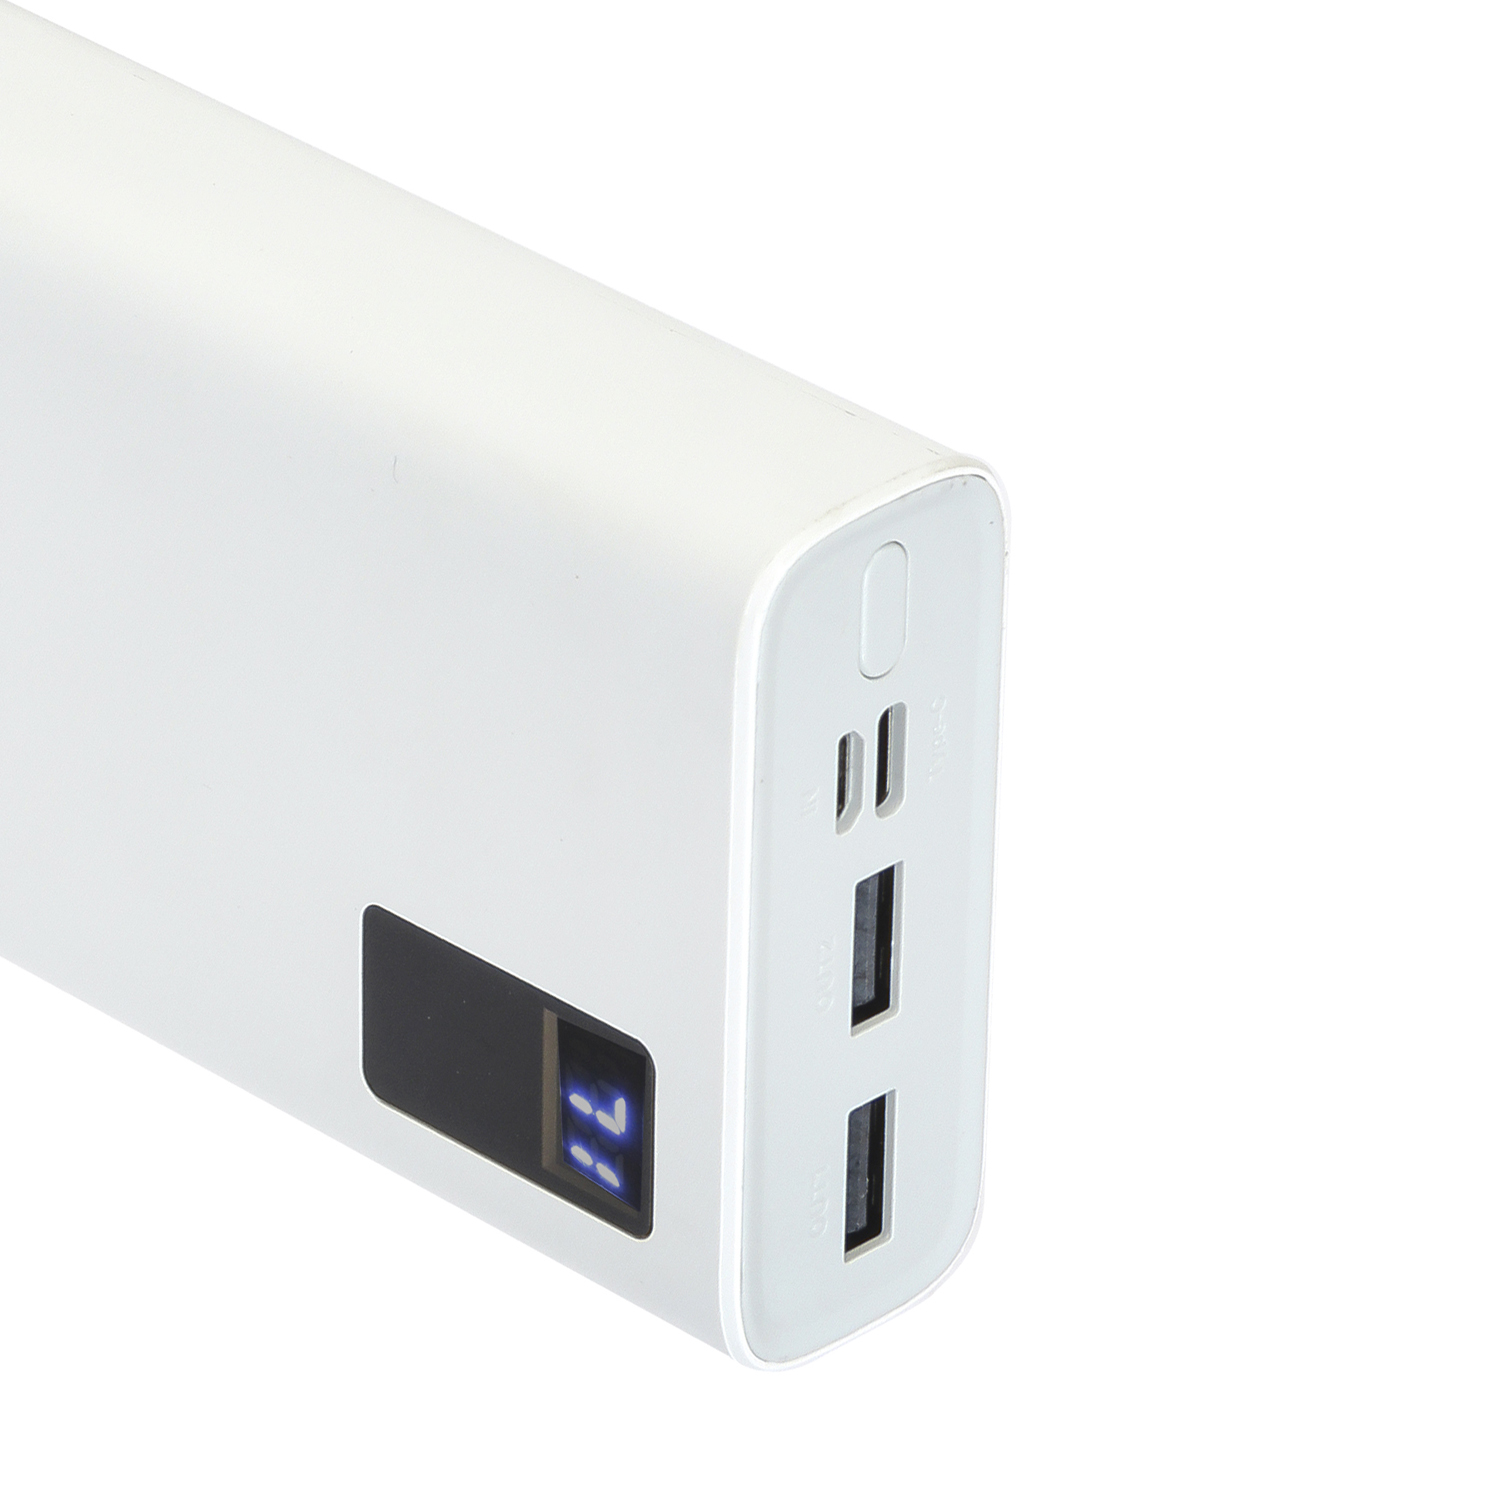 CallOne COPB-220 Digital Power Bank 20000mAh With 2USB Charging Port Li-Polymer Power Bank  Input USB Type C and Micro USB